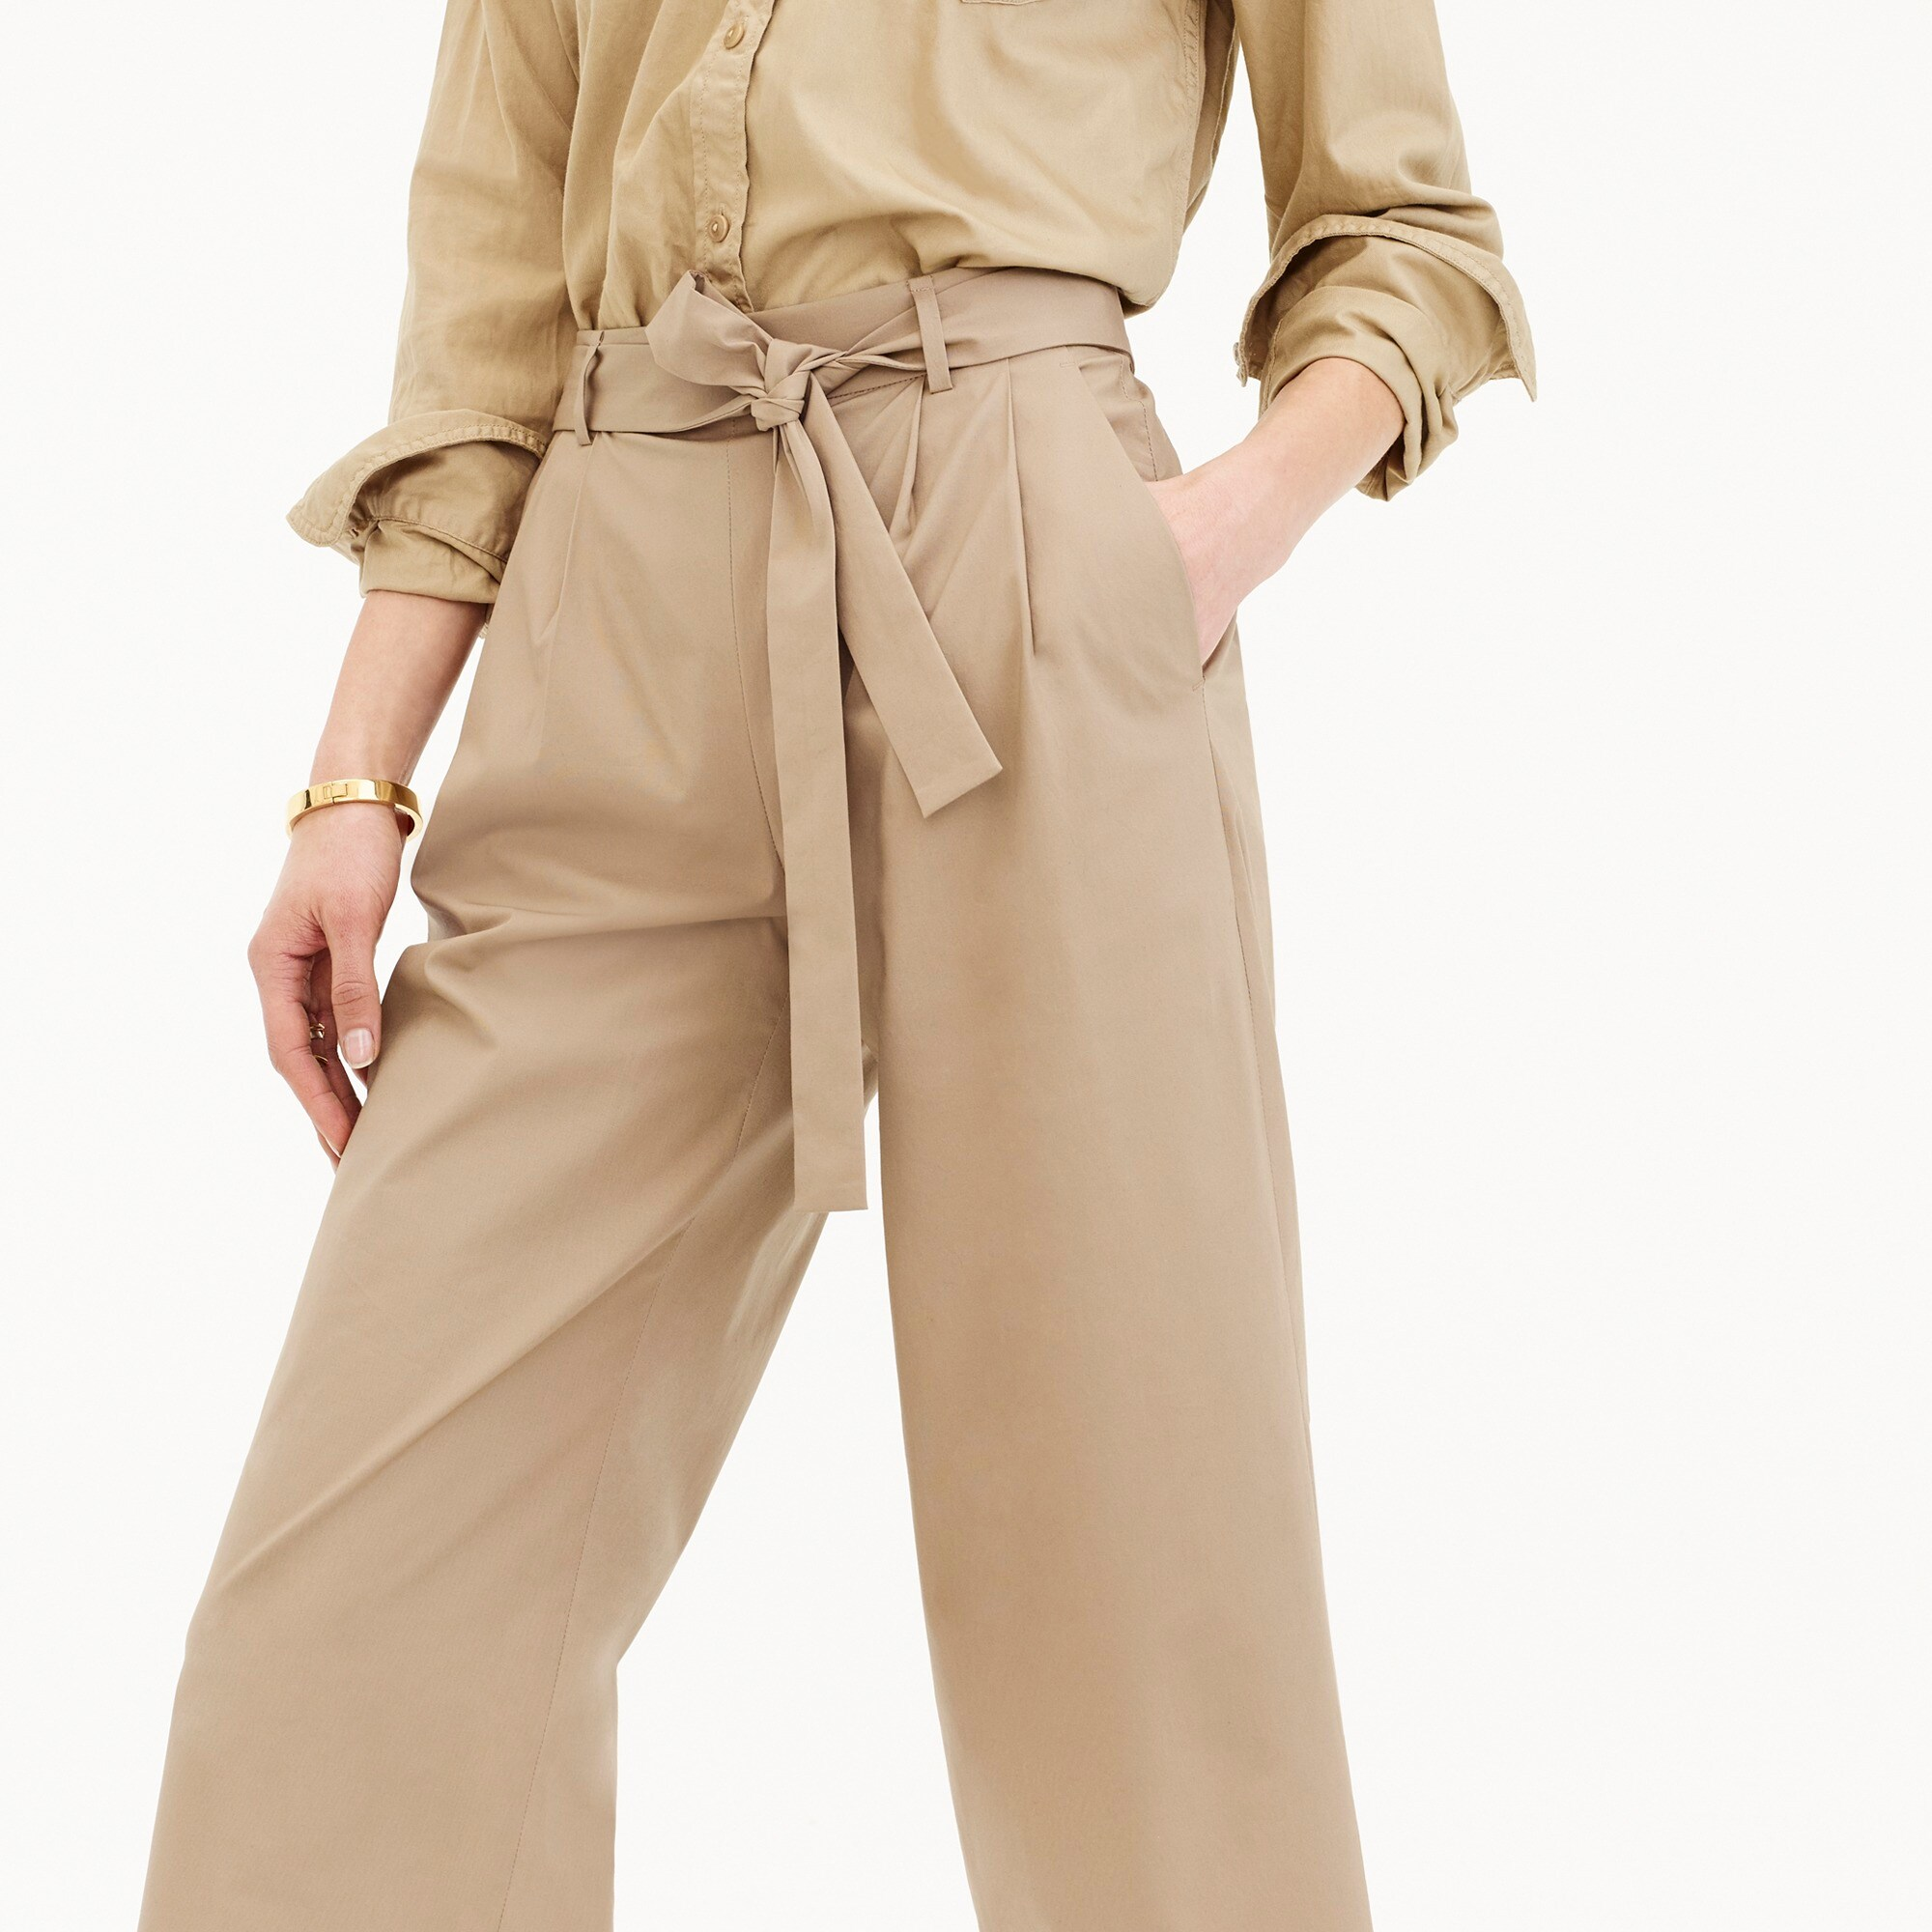 Image 2 for Tall wide-leg cropped pant in cotton-poplin